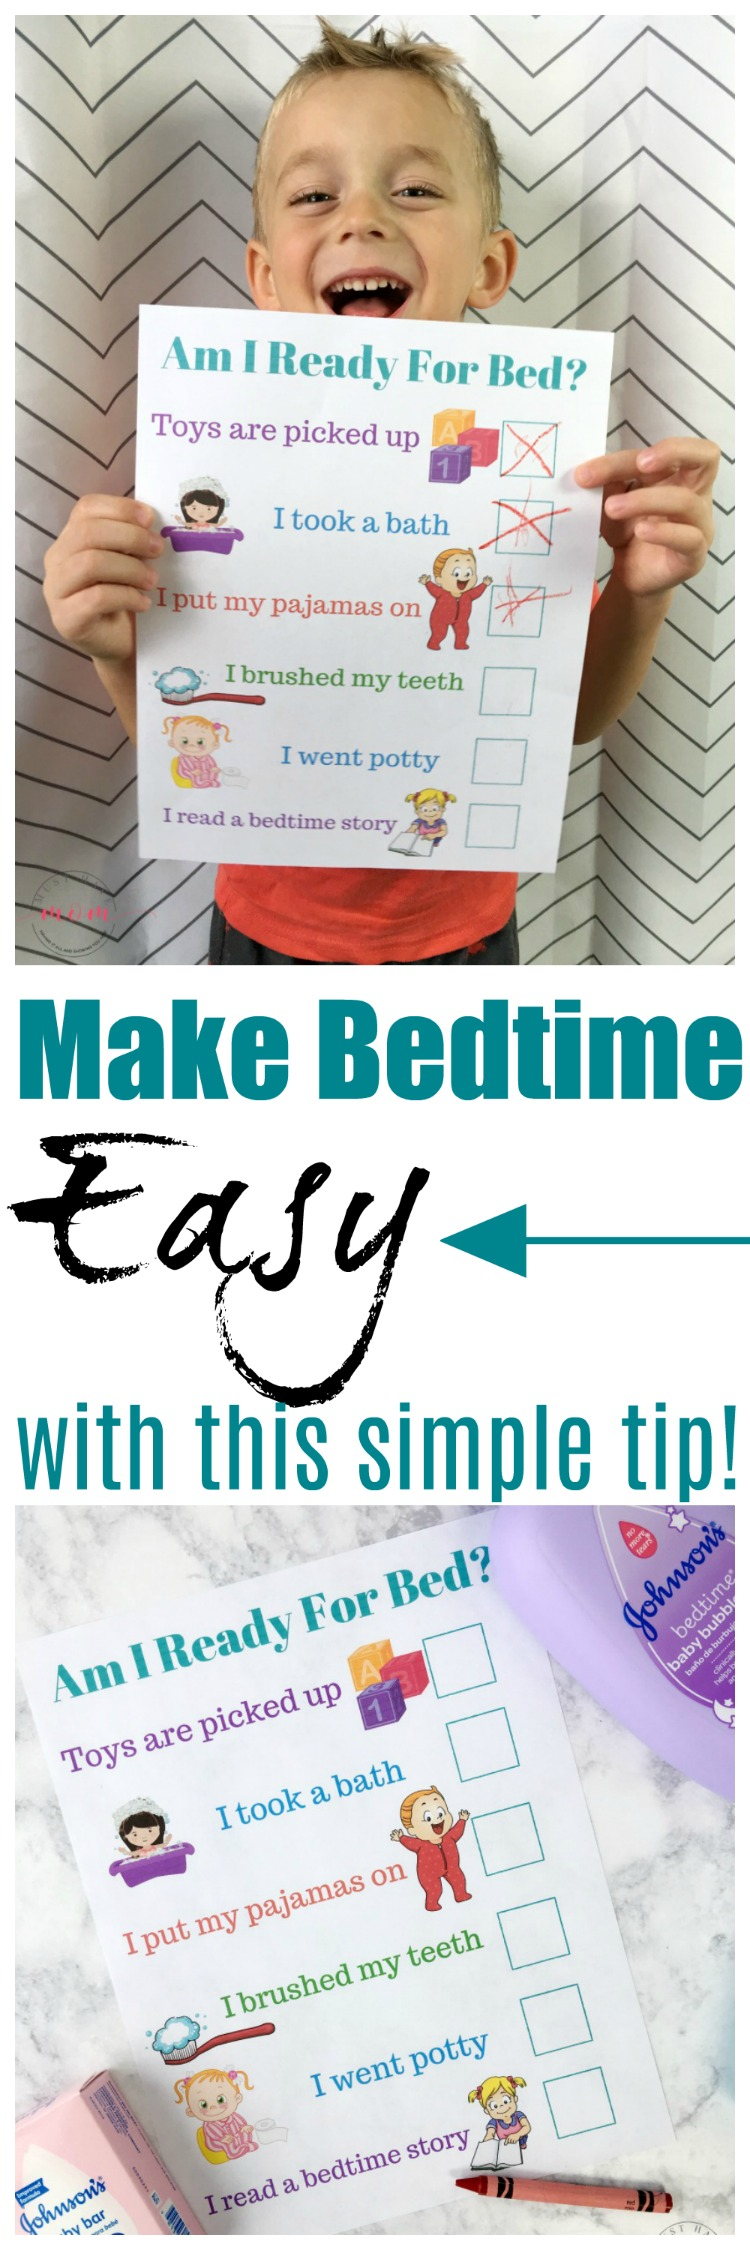 Make bedtime EASY with this simple tip and free printable bedtime routine chart!